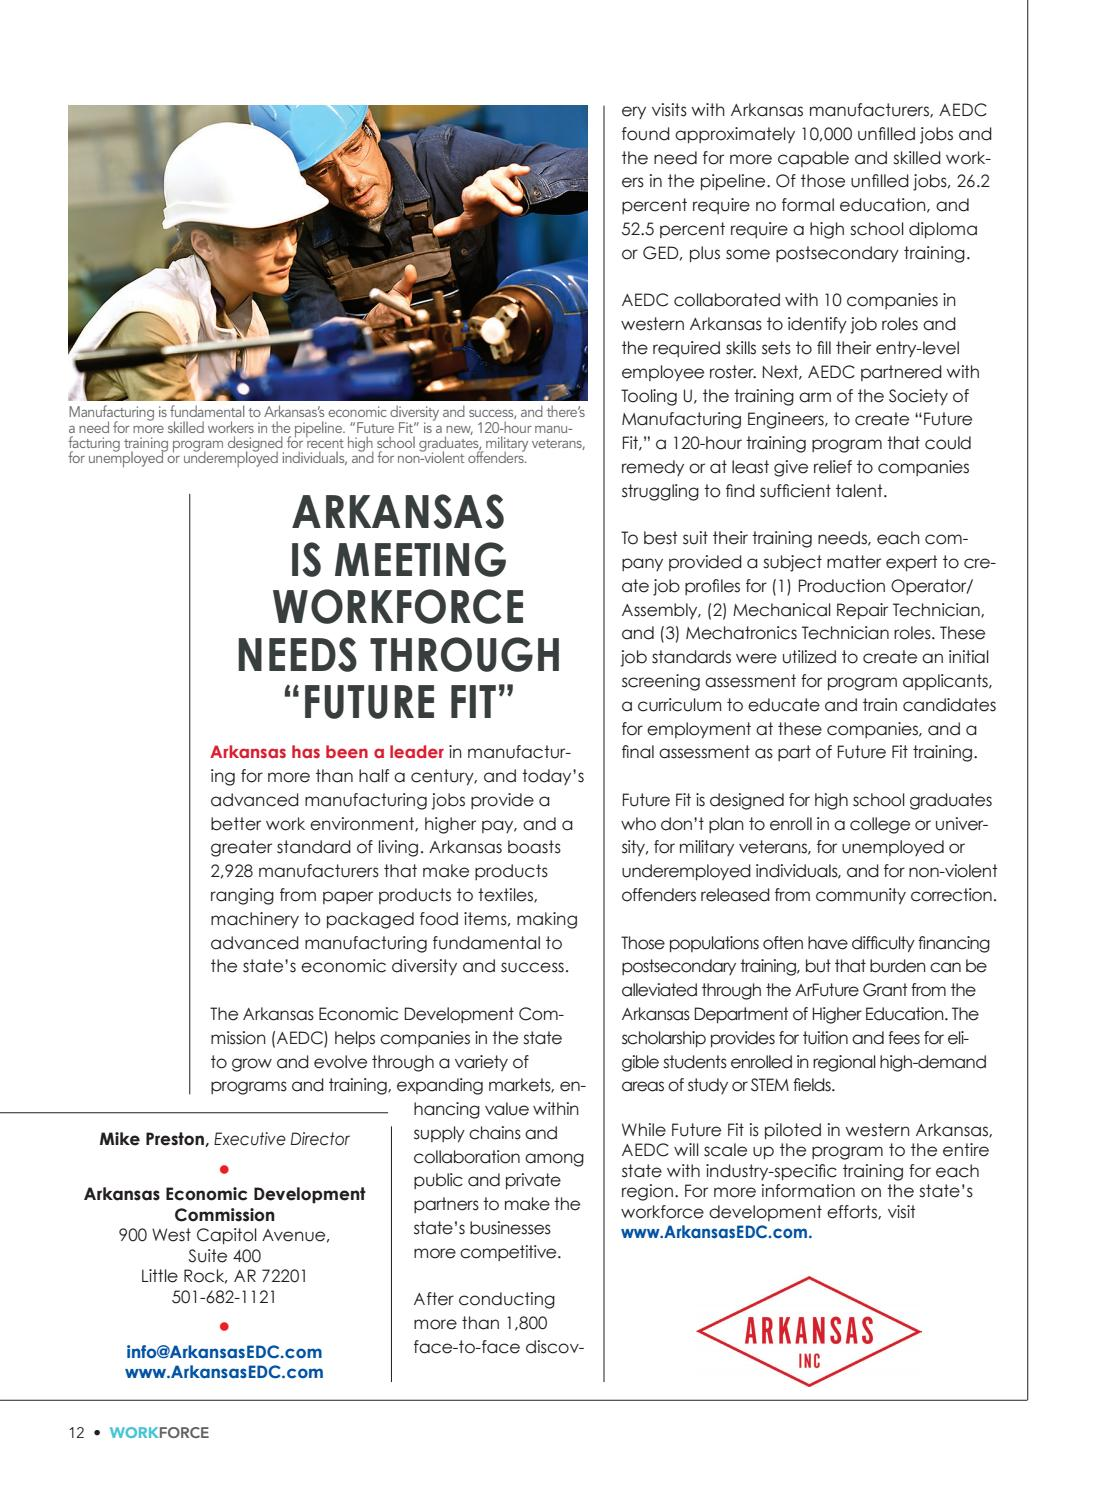 Workforce Supplement to the Q4 2018 Issue of Area